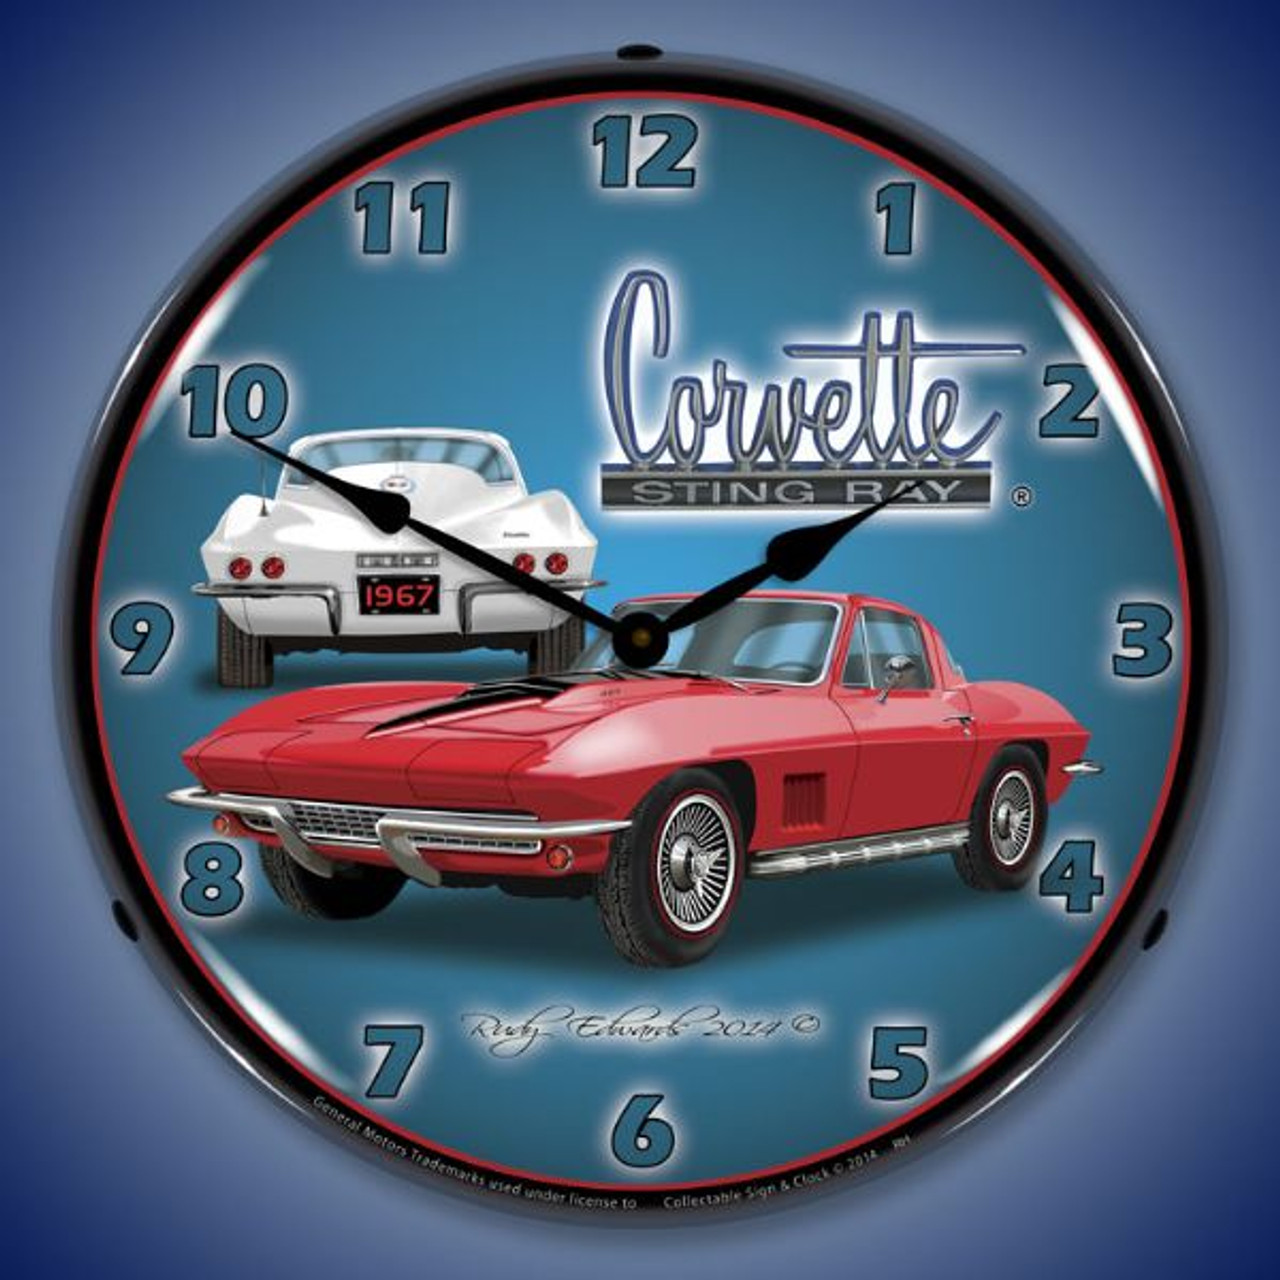 1967 Corvette Stingray Lighted Wall Clock 14 x 14 Inches